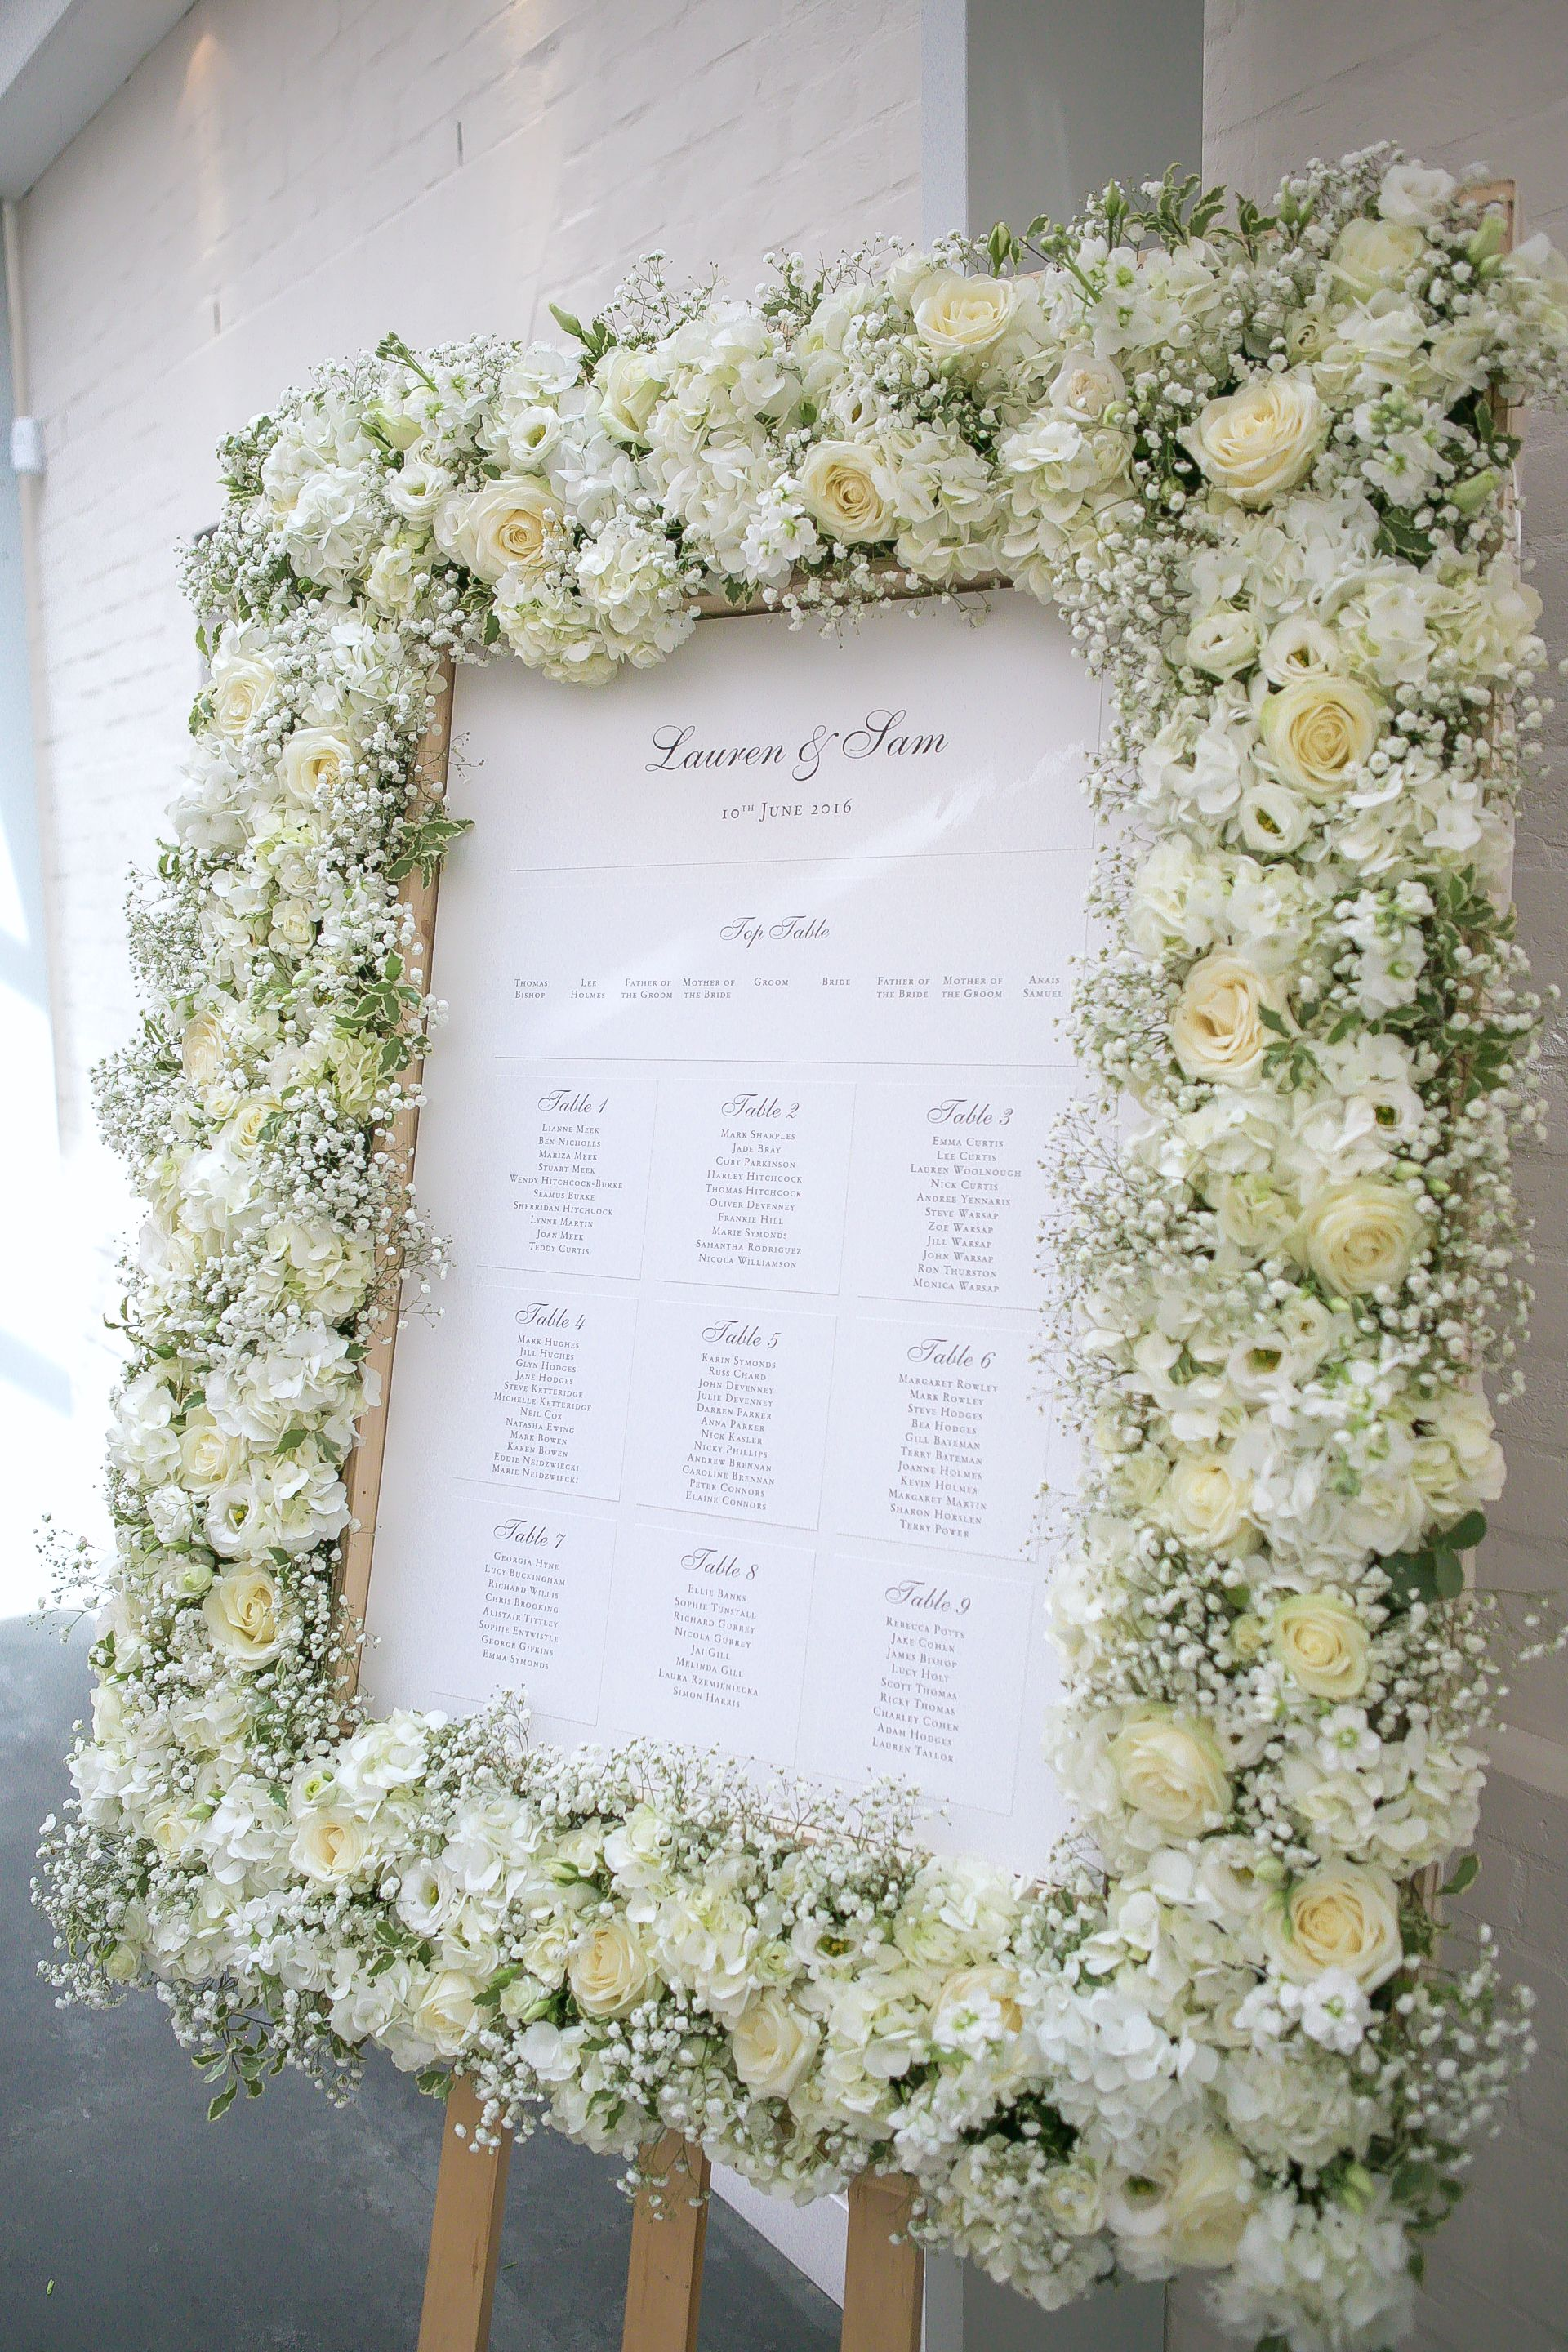 lacey white roses, hydrangeas and gypsophila table-plan floral frame ...